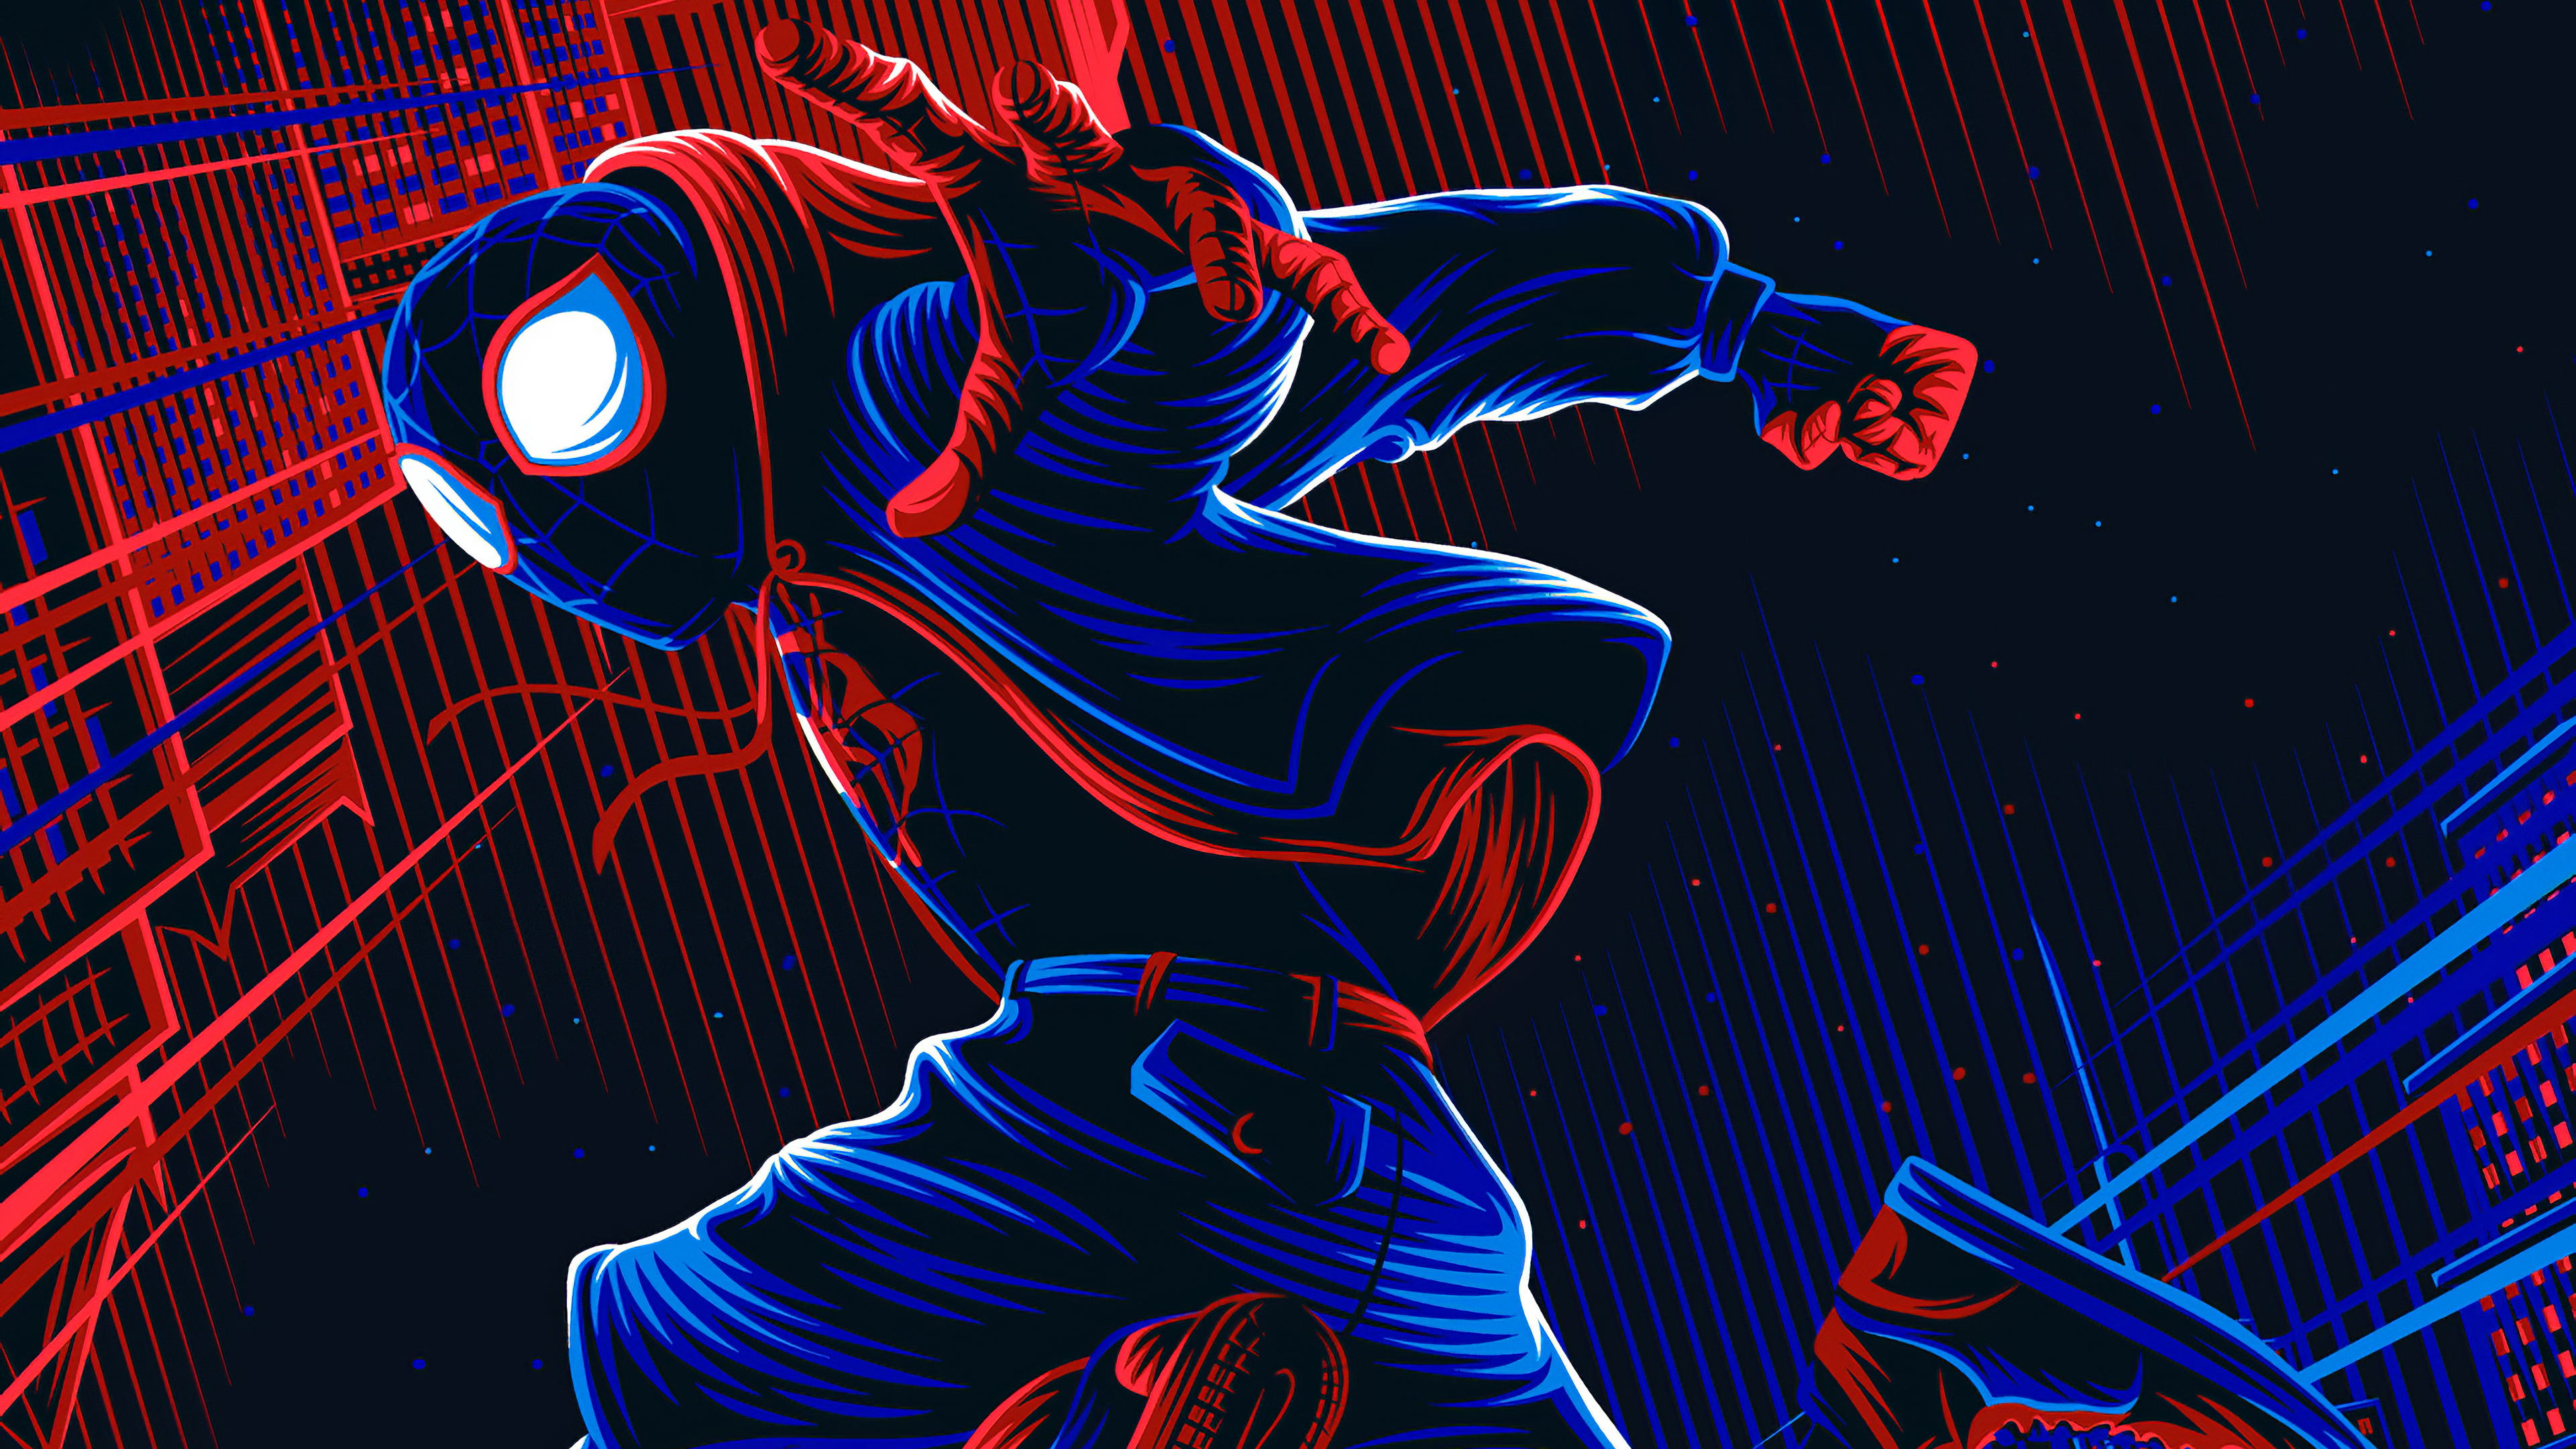 spiderman miles artwork 1576098018 - Spiderman Miles Artwork - spider man wallpaper phone hd, Spider man wallpaper 4k hd, spider man art wallpaper hd 4k, spider man 4k wallpaper